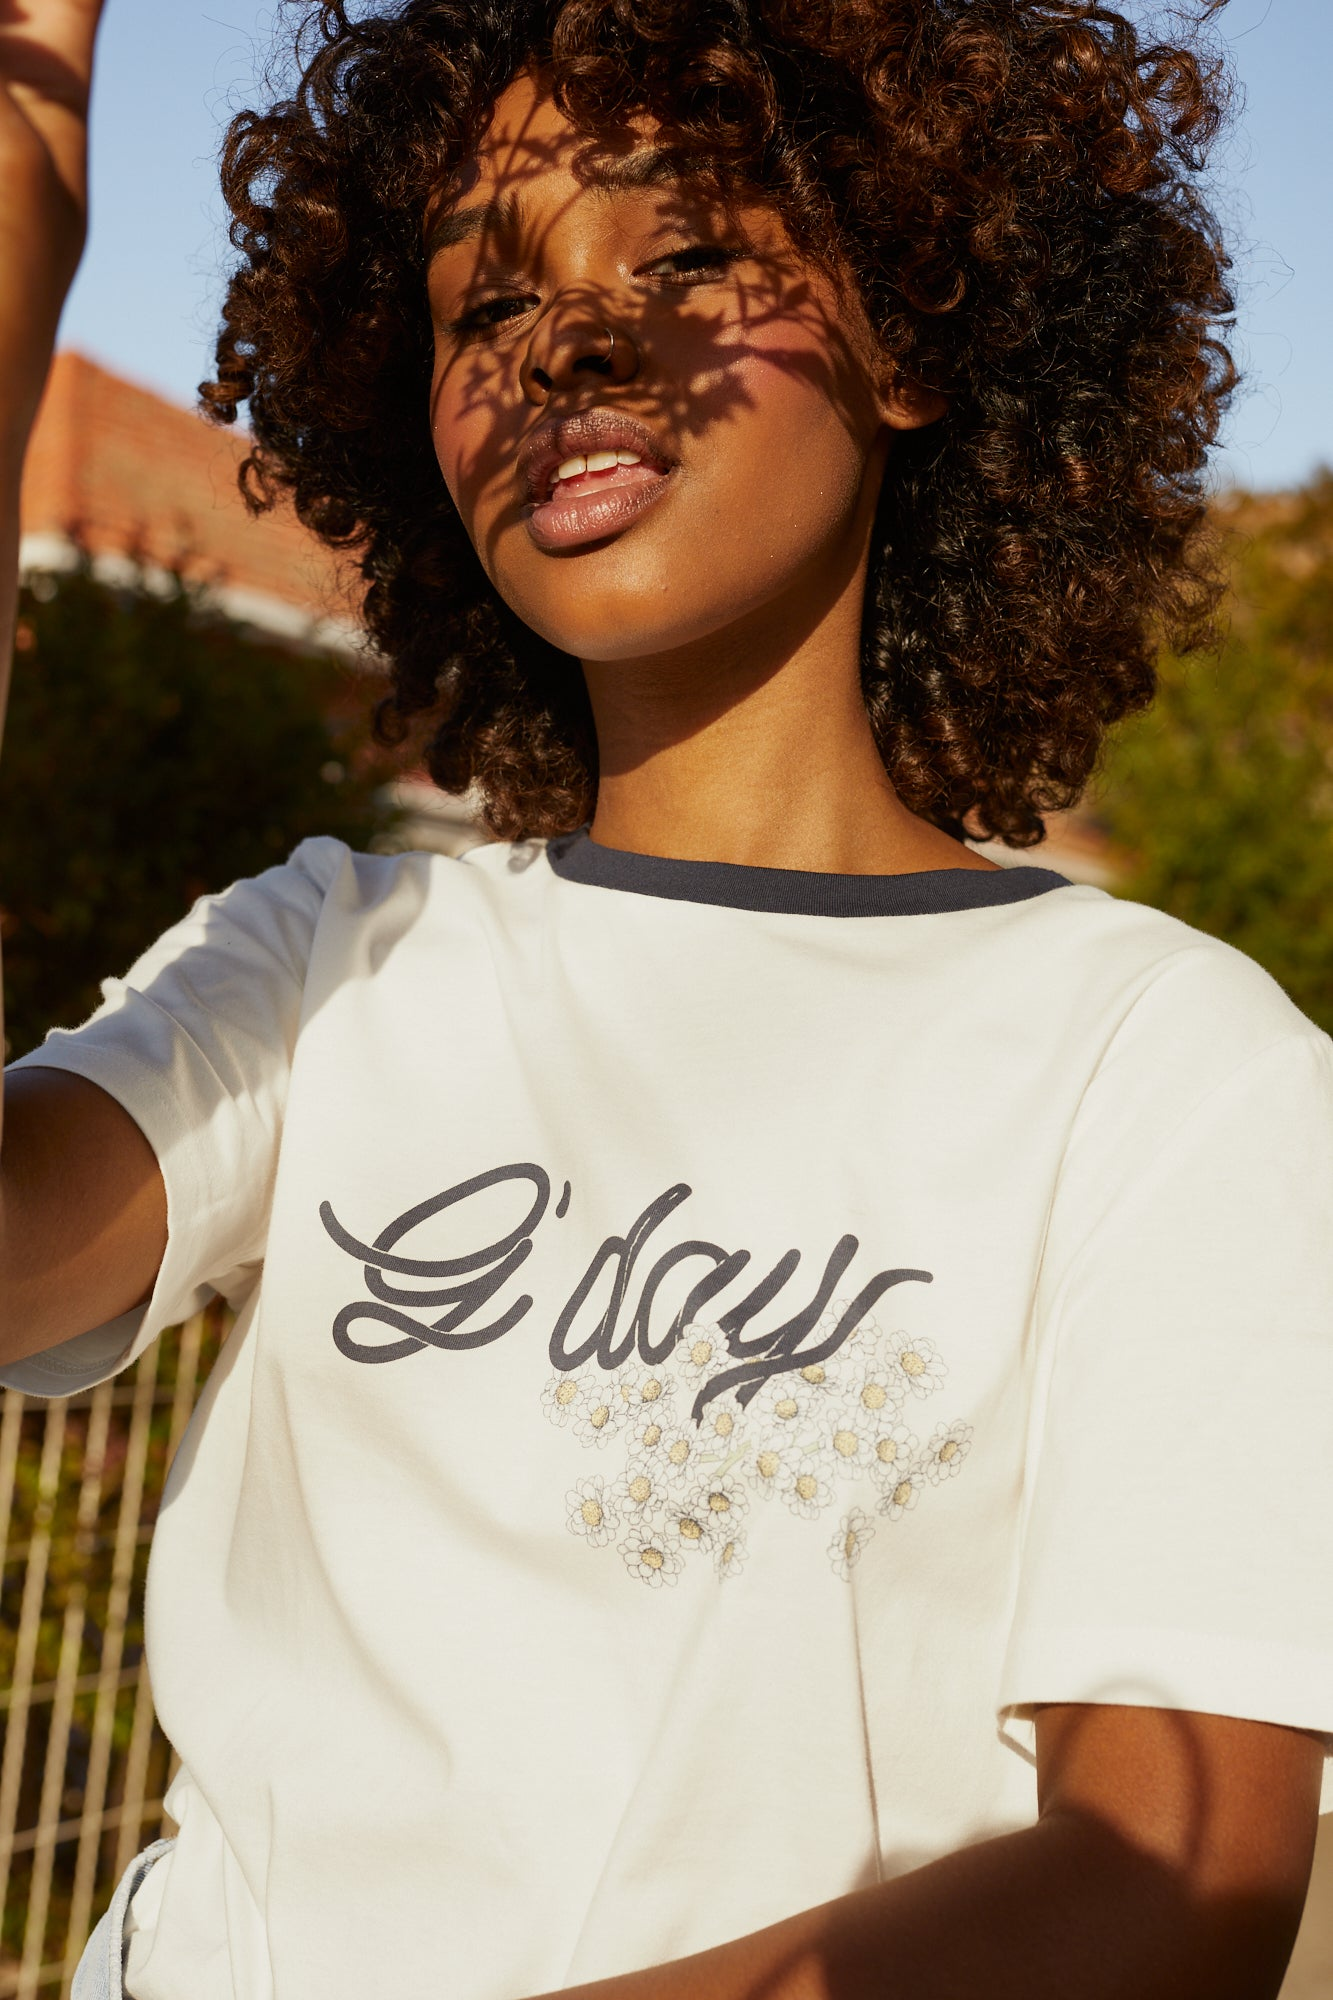 The G'day Tee